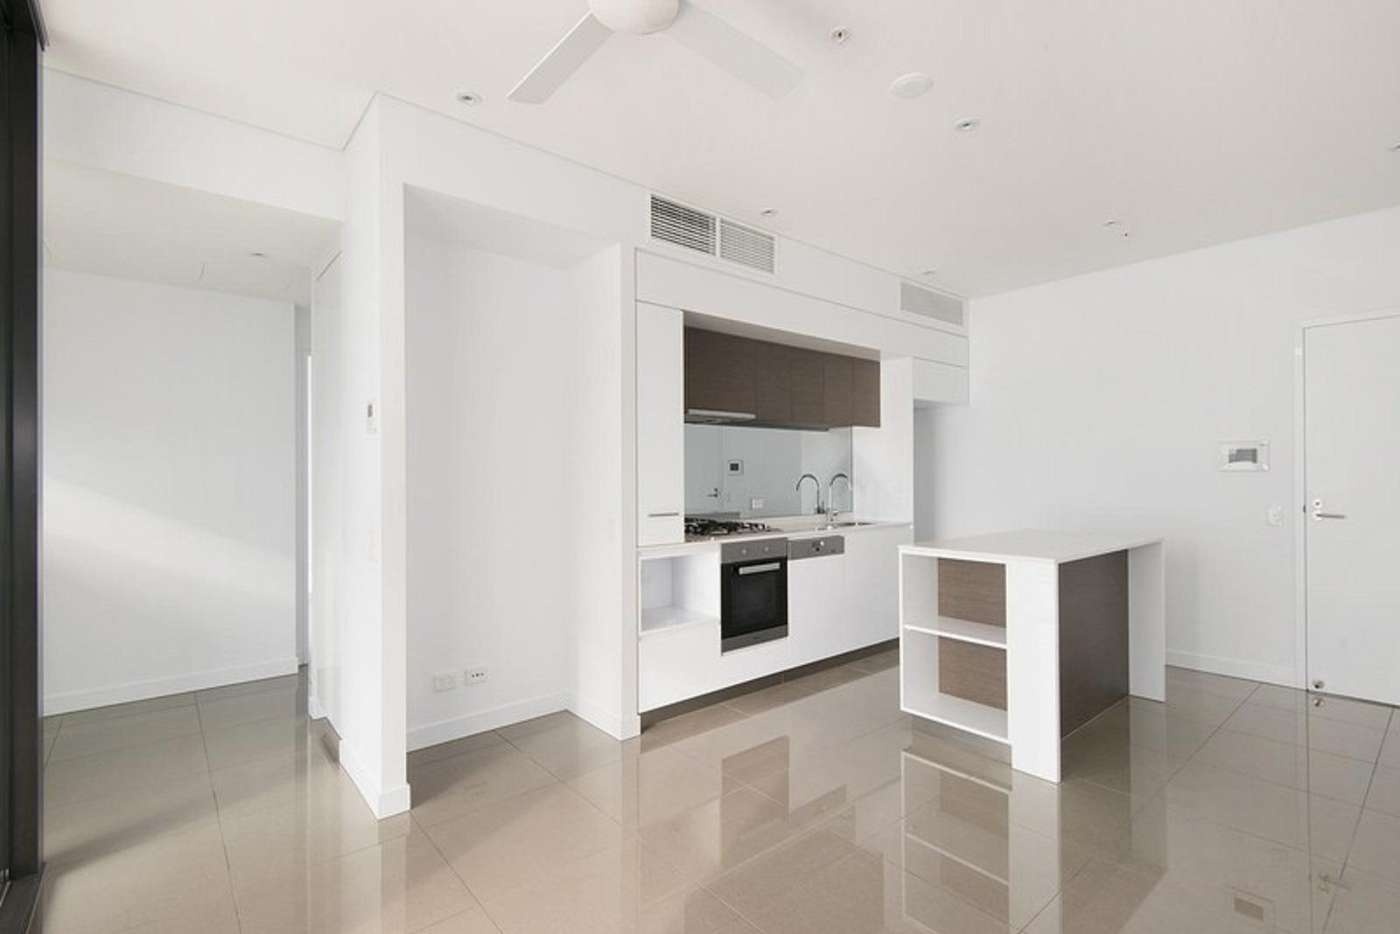 Main view of Homely apartment listing, 3036/33 Remora Road, Hamilton QLD 4007